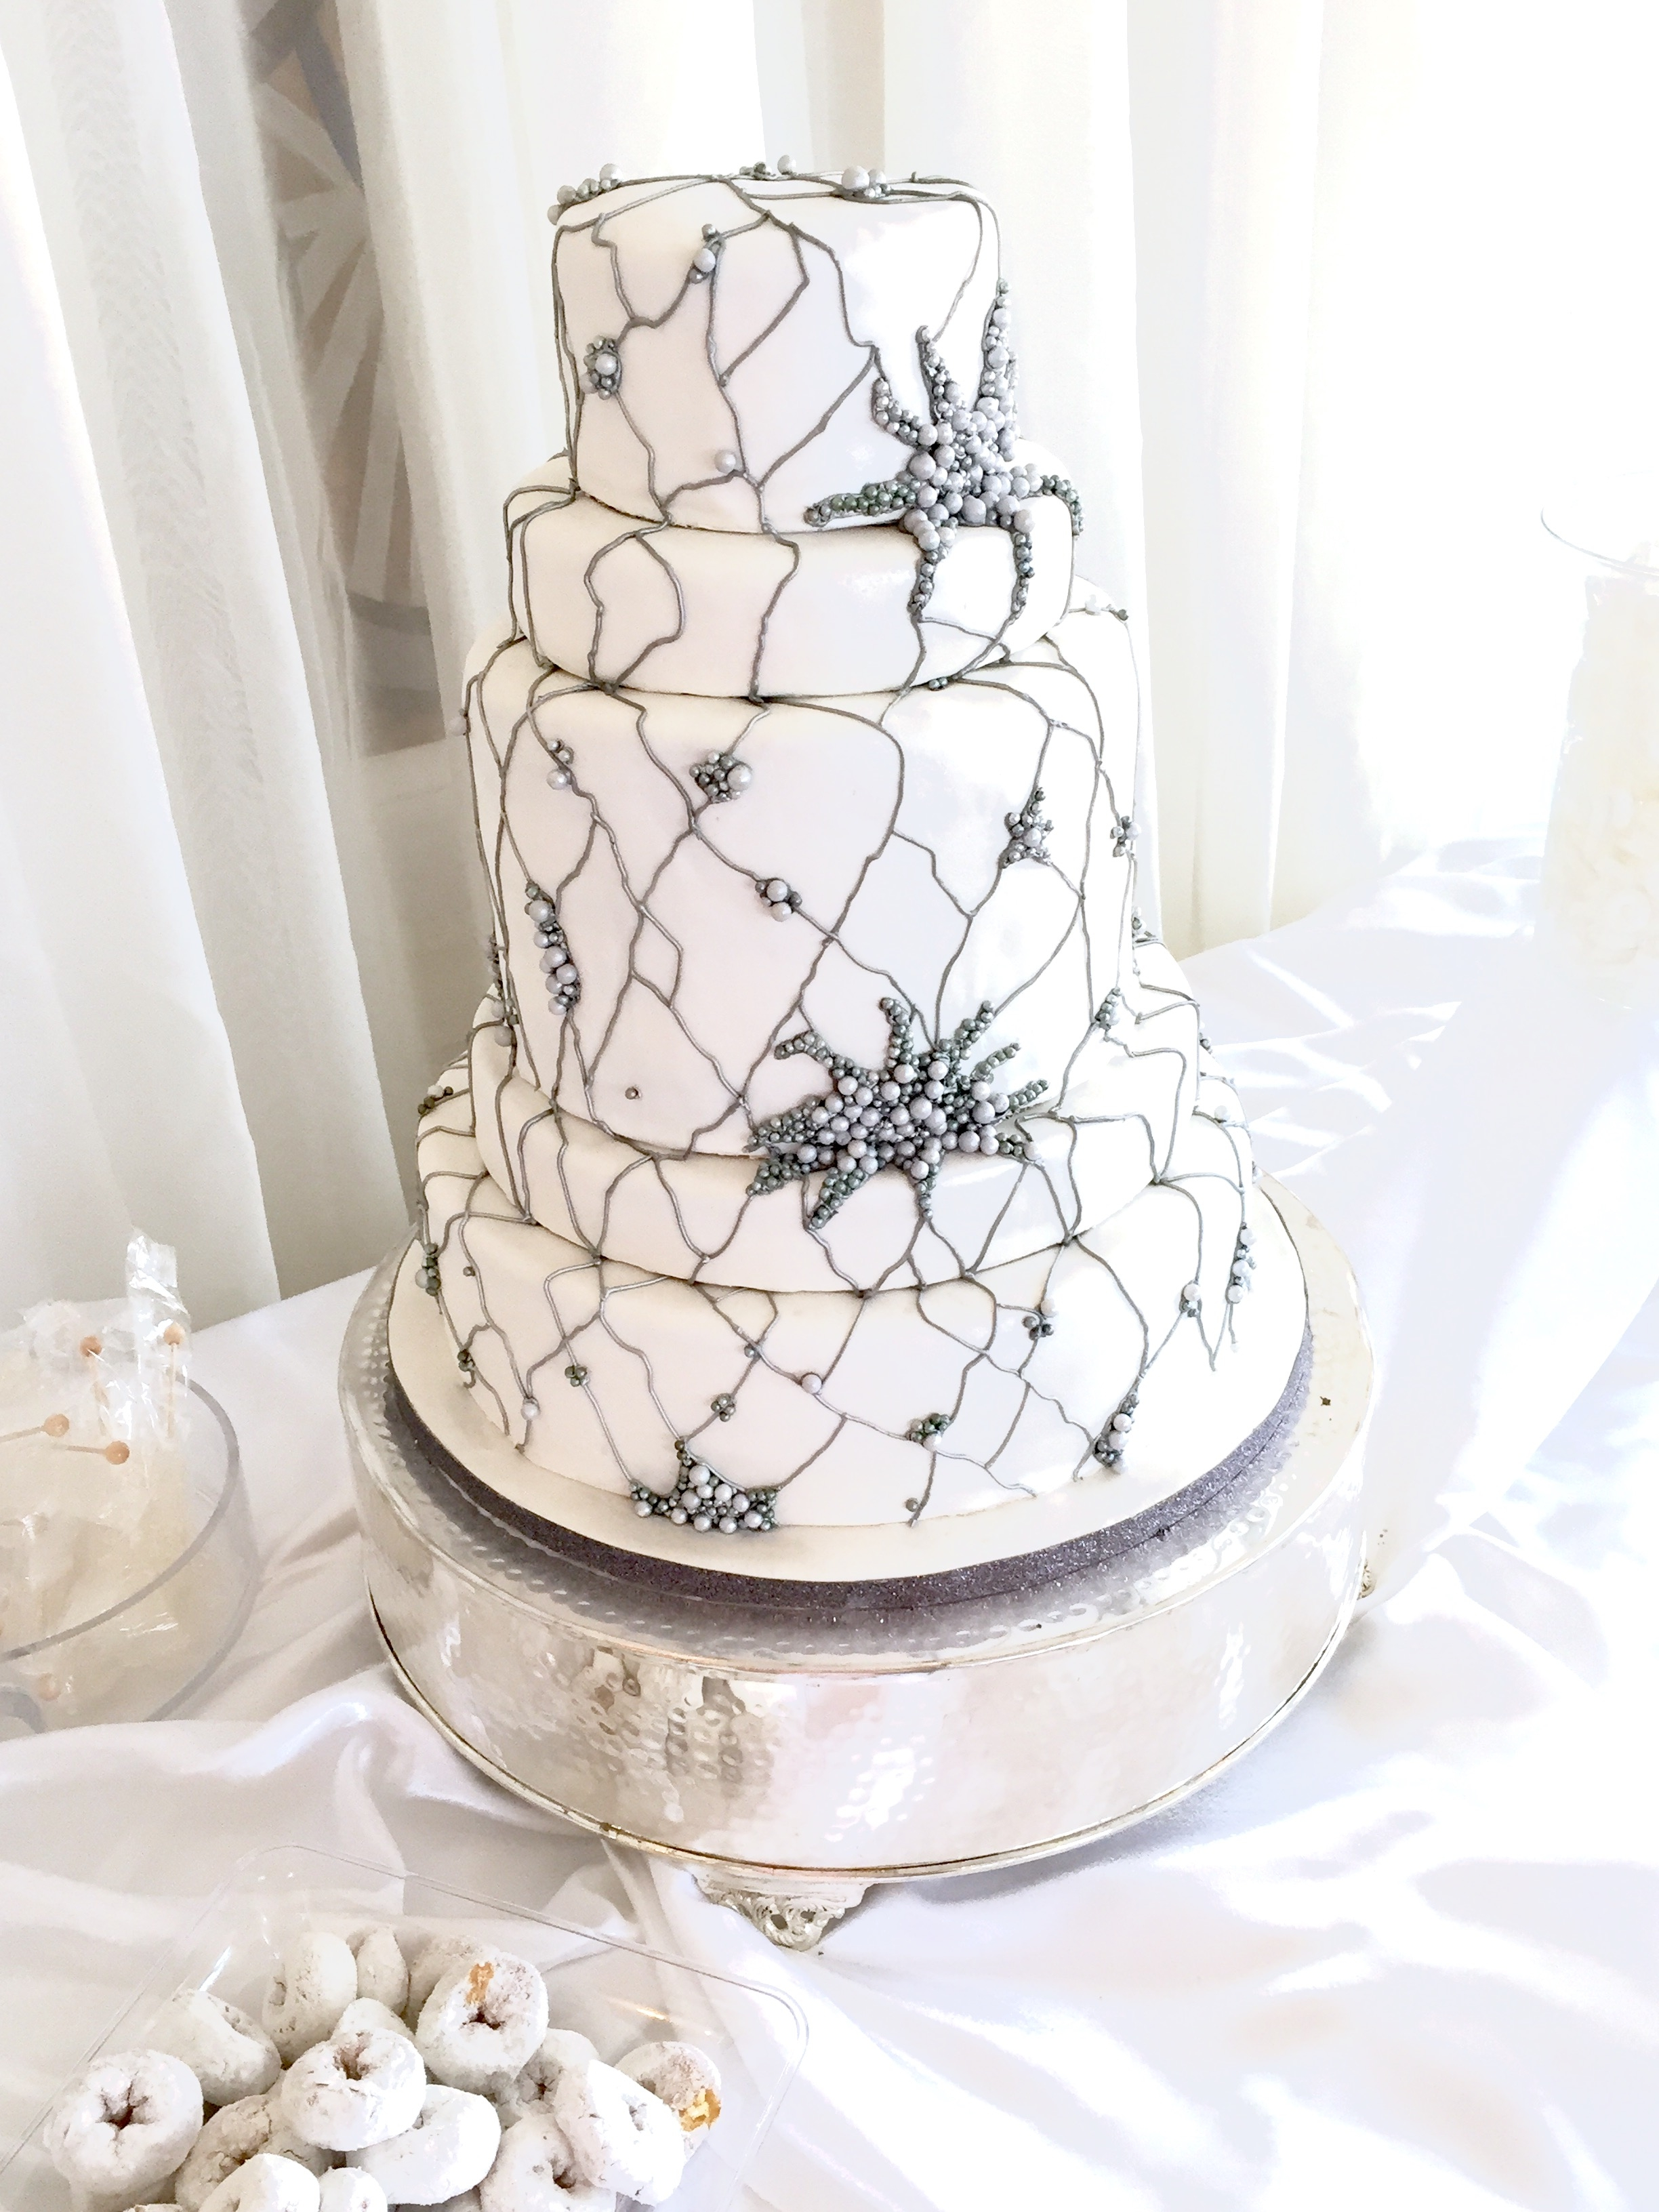 White Cake Design With Colored Piping